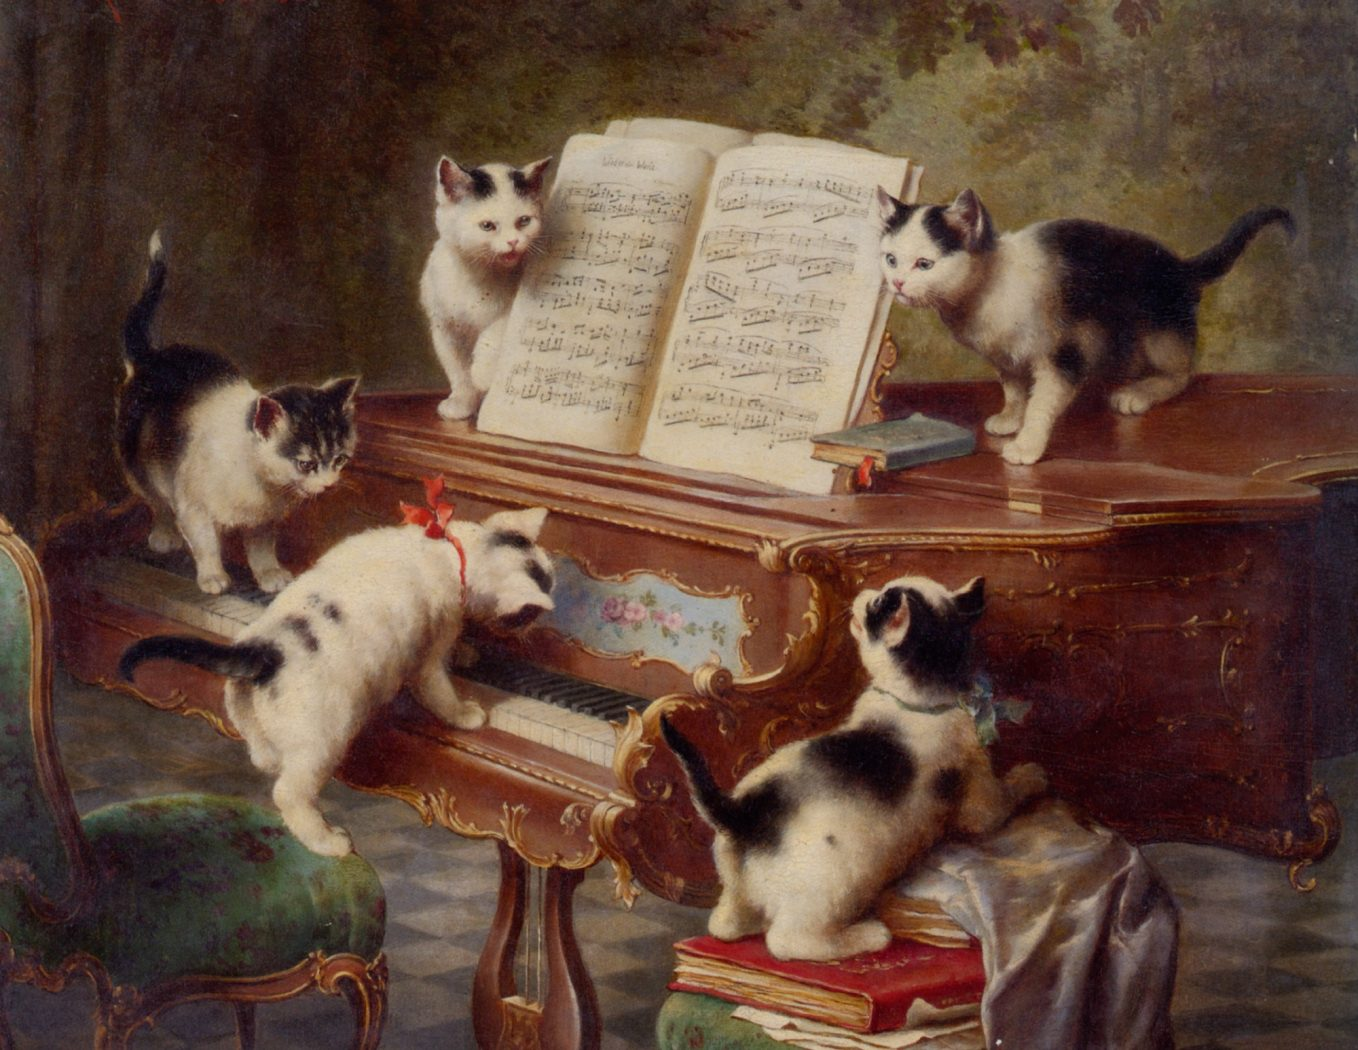 The Kittens' Recital